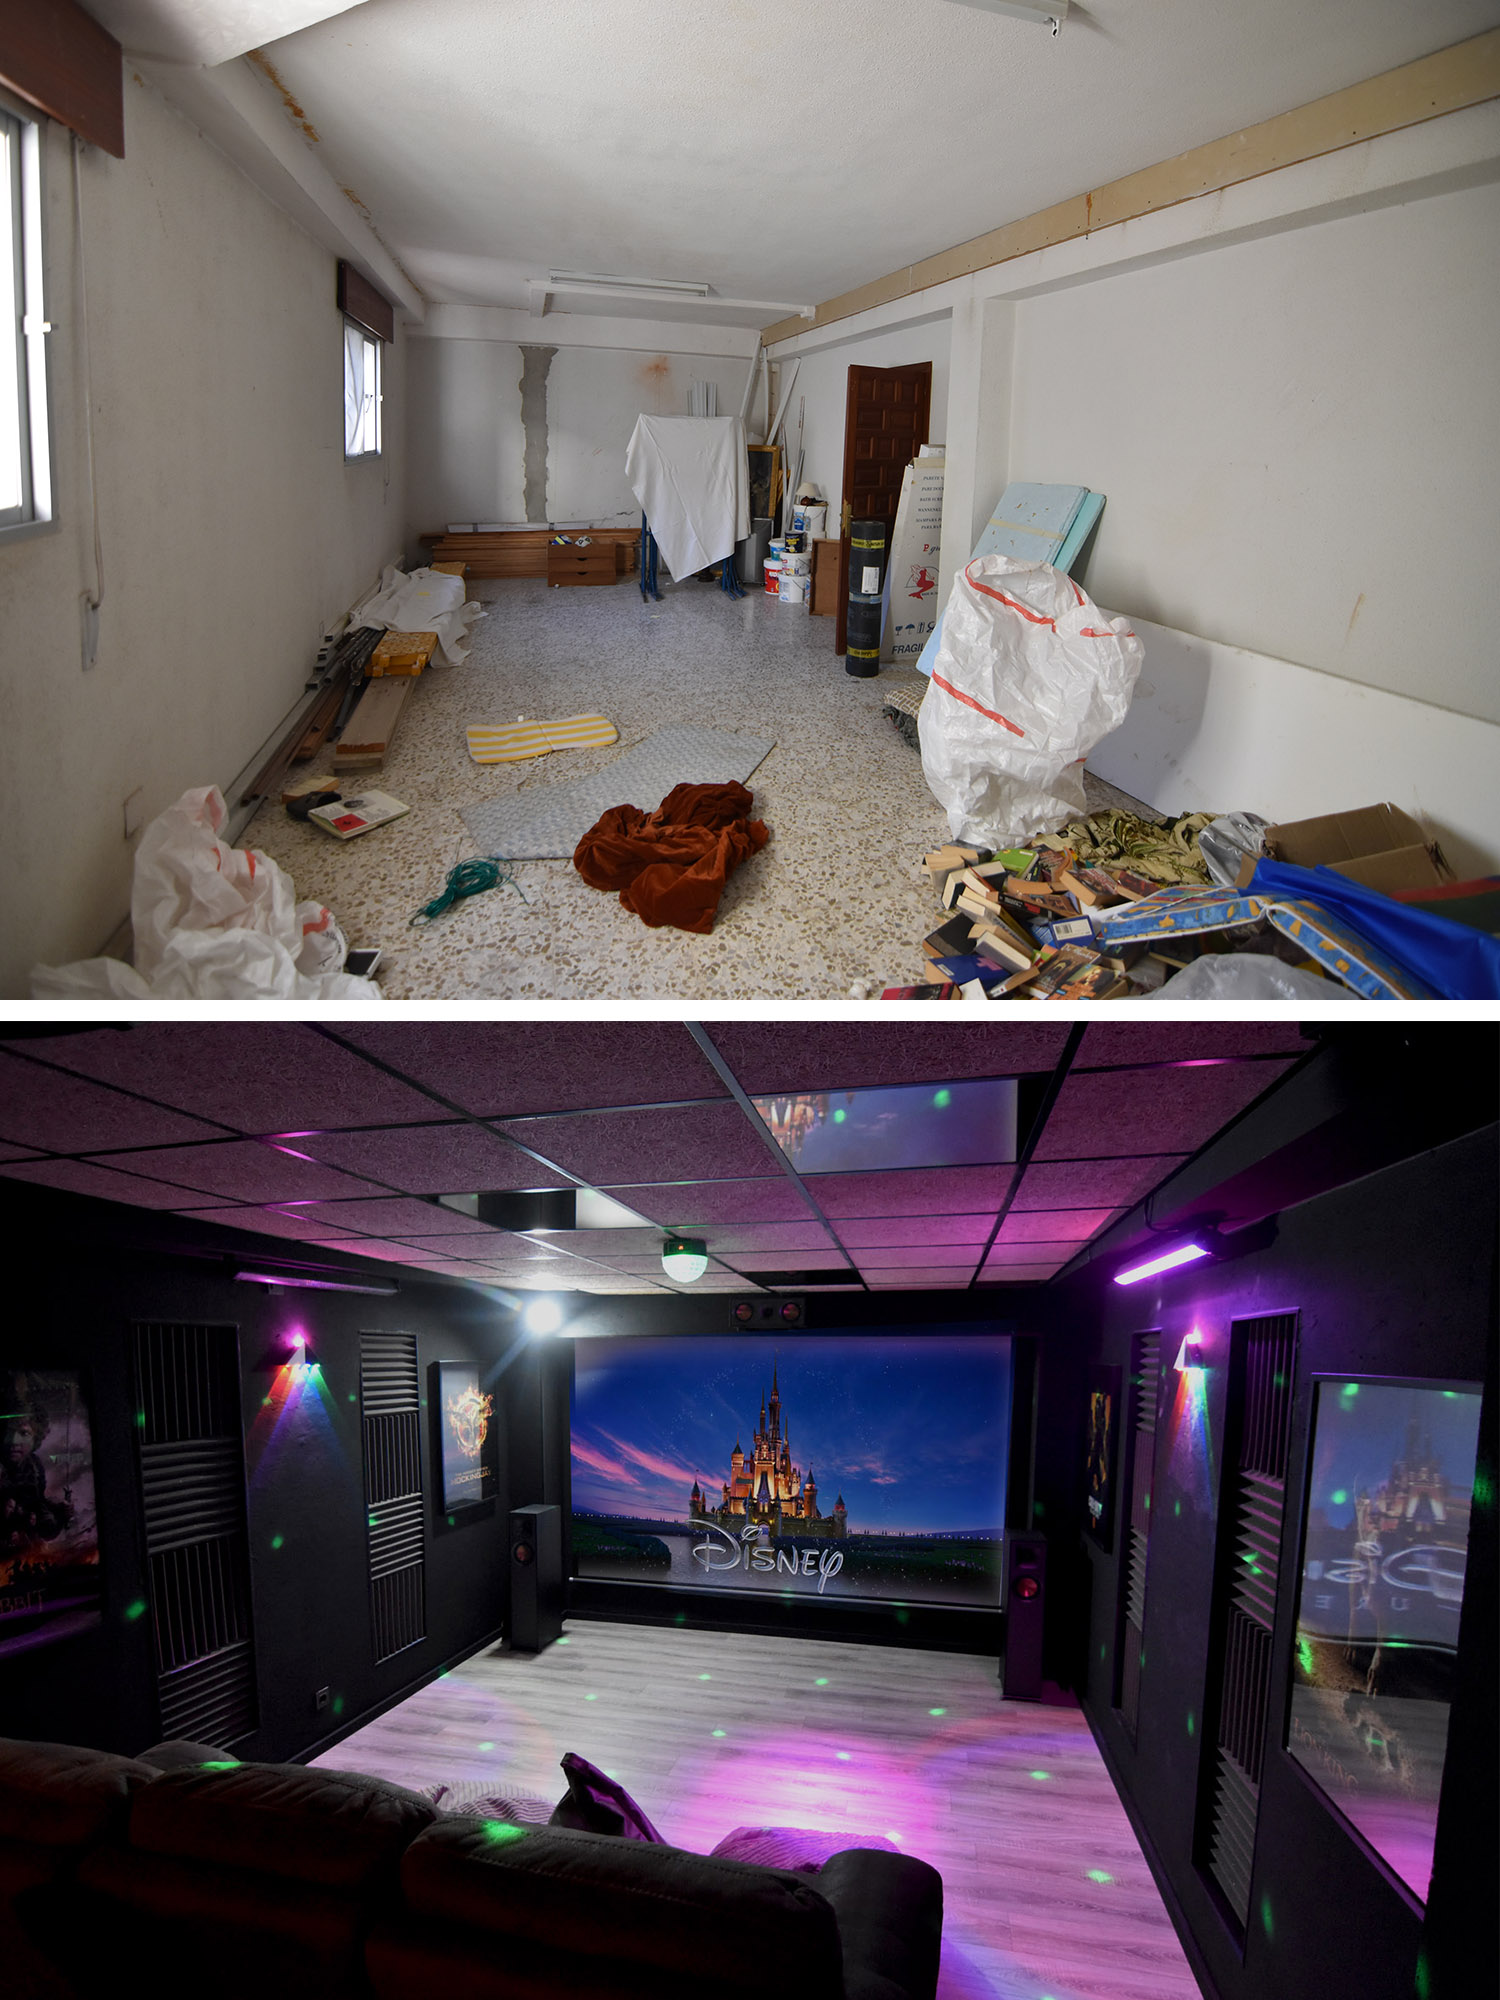 Basement to cine before and after